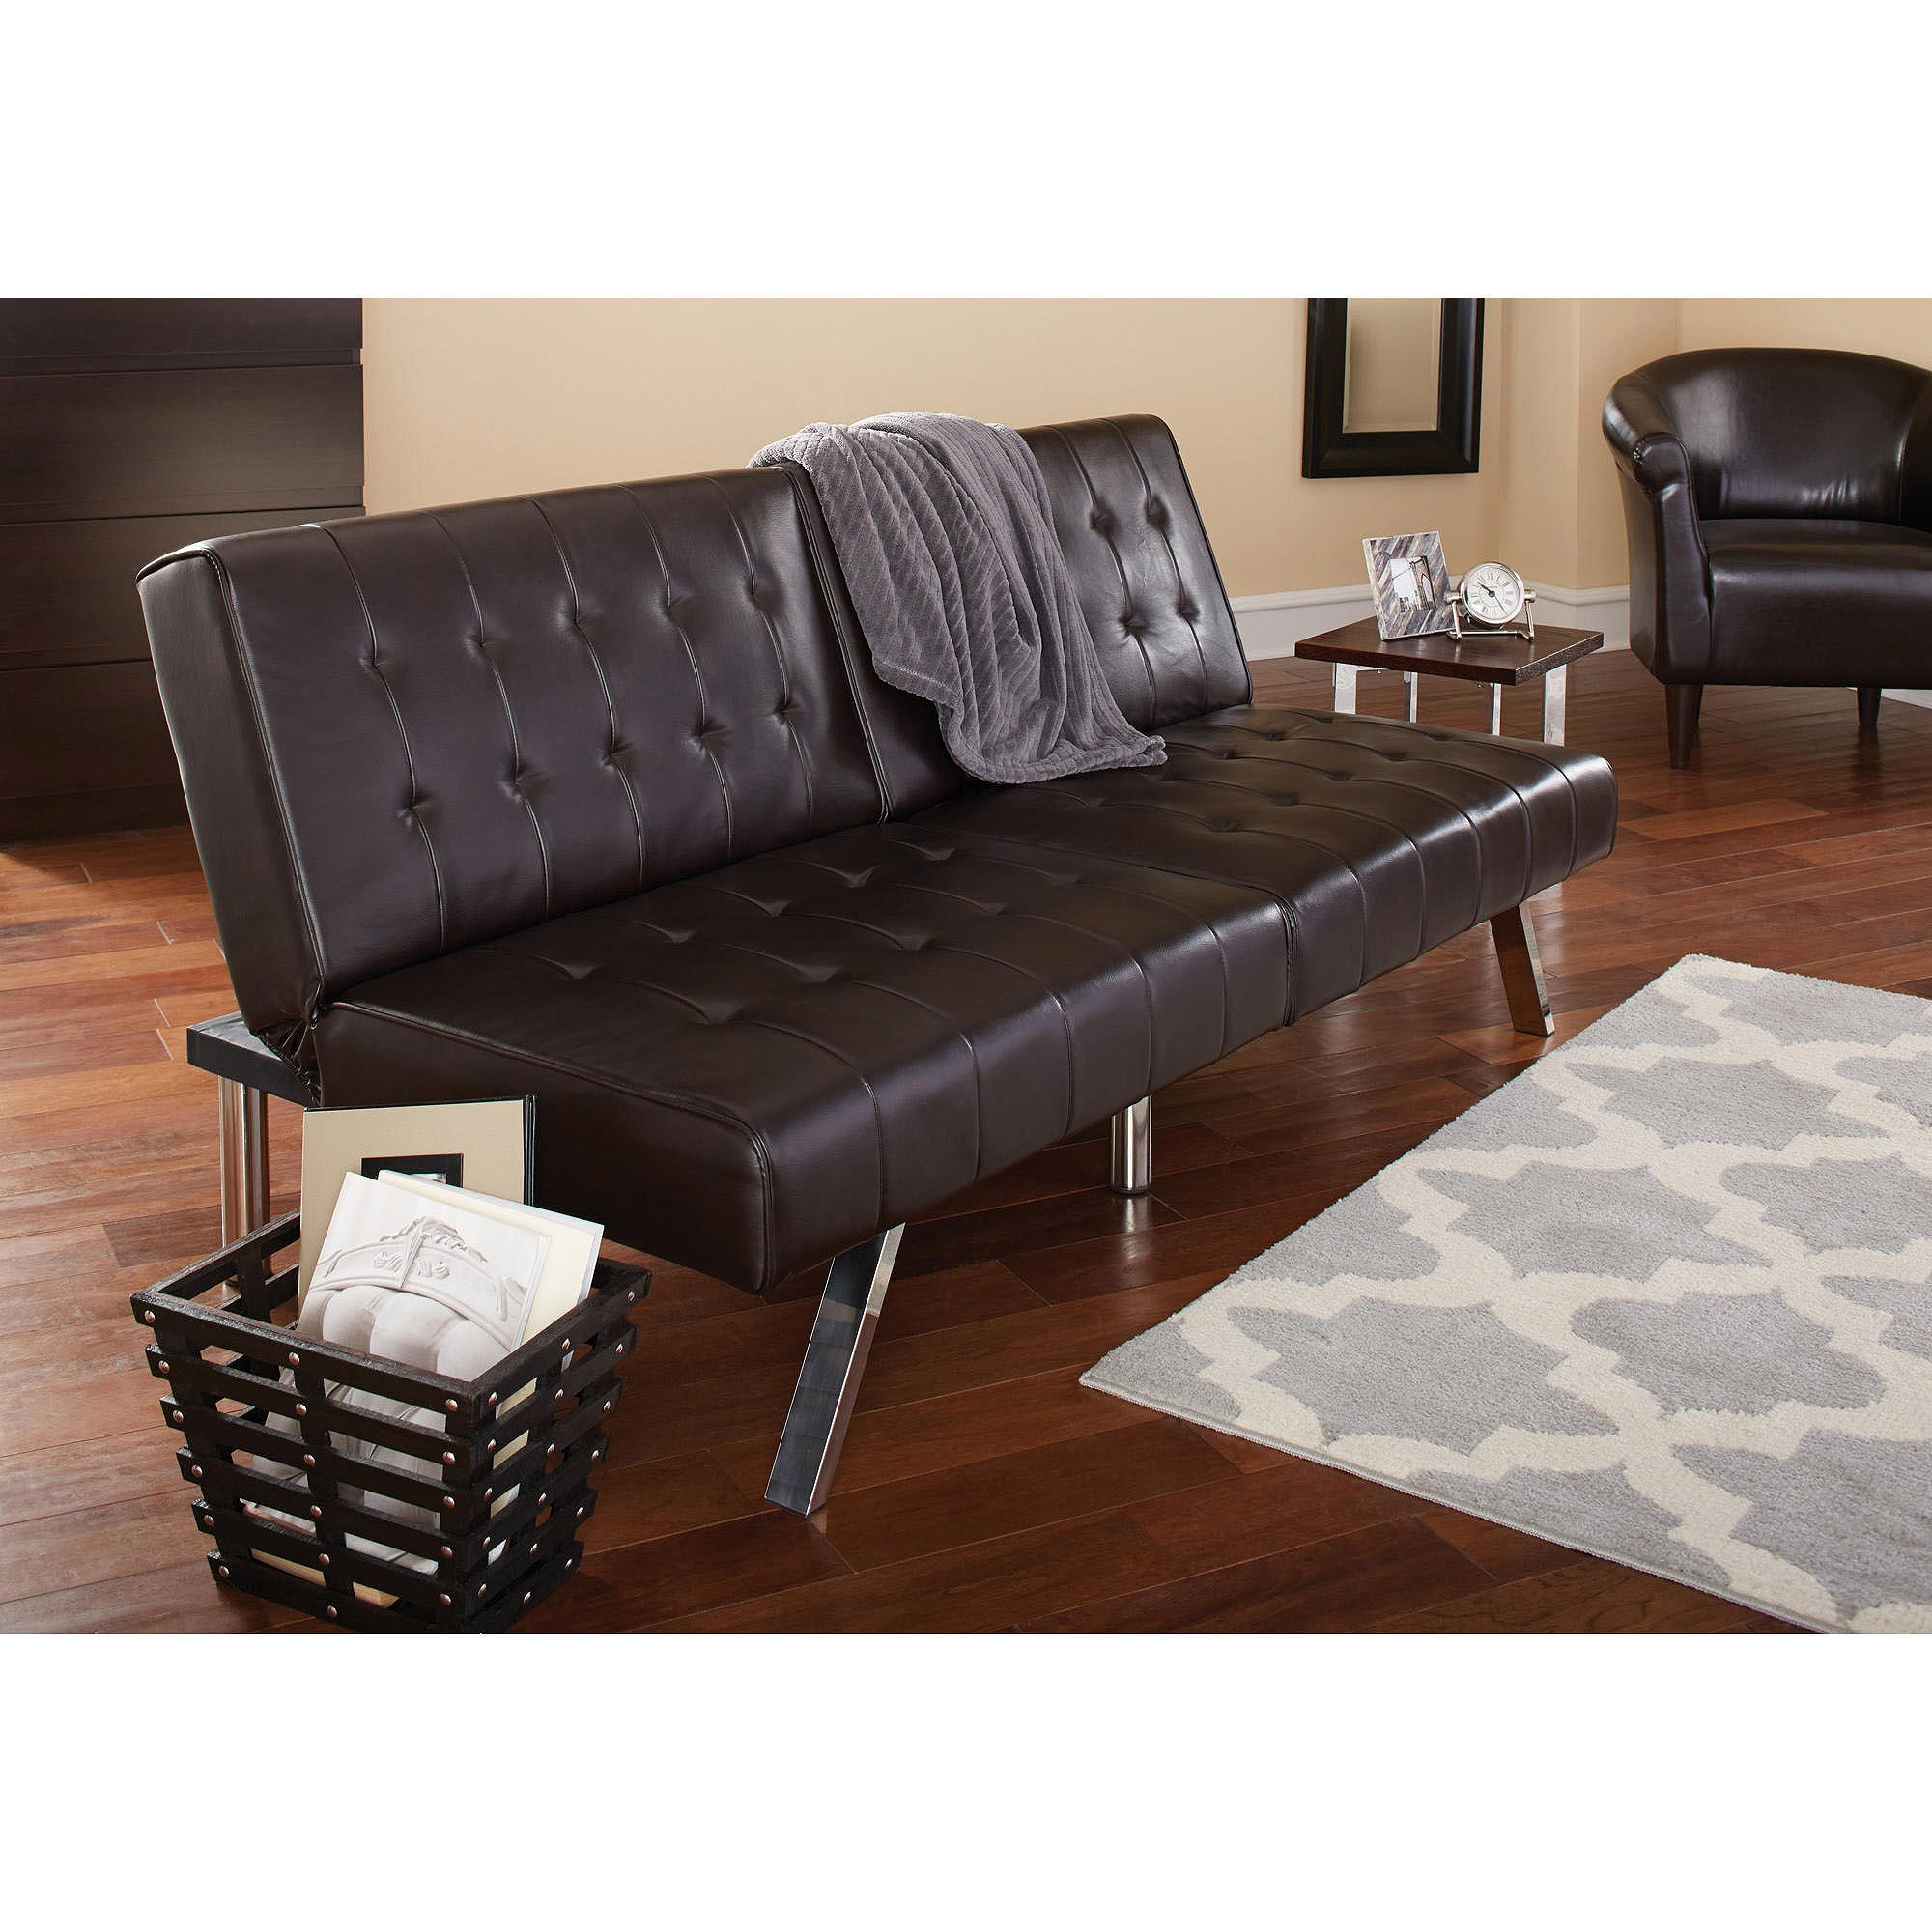 Morgan Faux Leather Tufted Convertible Futon, Brown, Modern Look, Quickly Converts from Sofa to Lounger to Sleeper, Click-clack Technology, Strong Stainless Steel Legs + Expert Guide by eCom Rocket